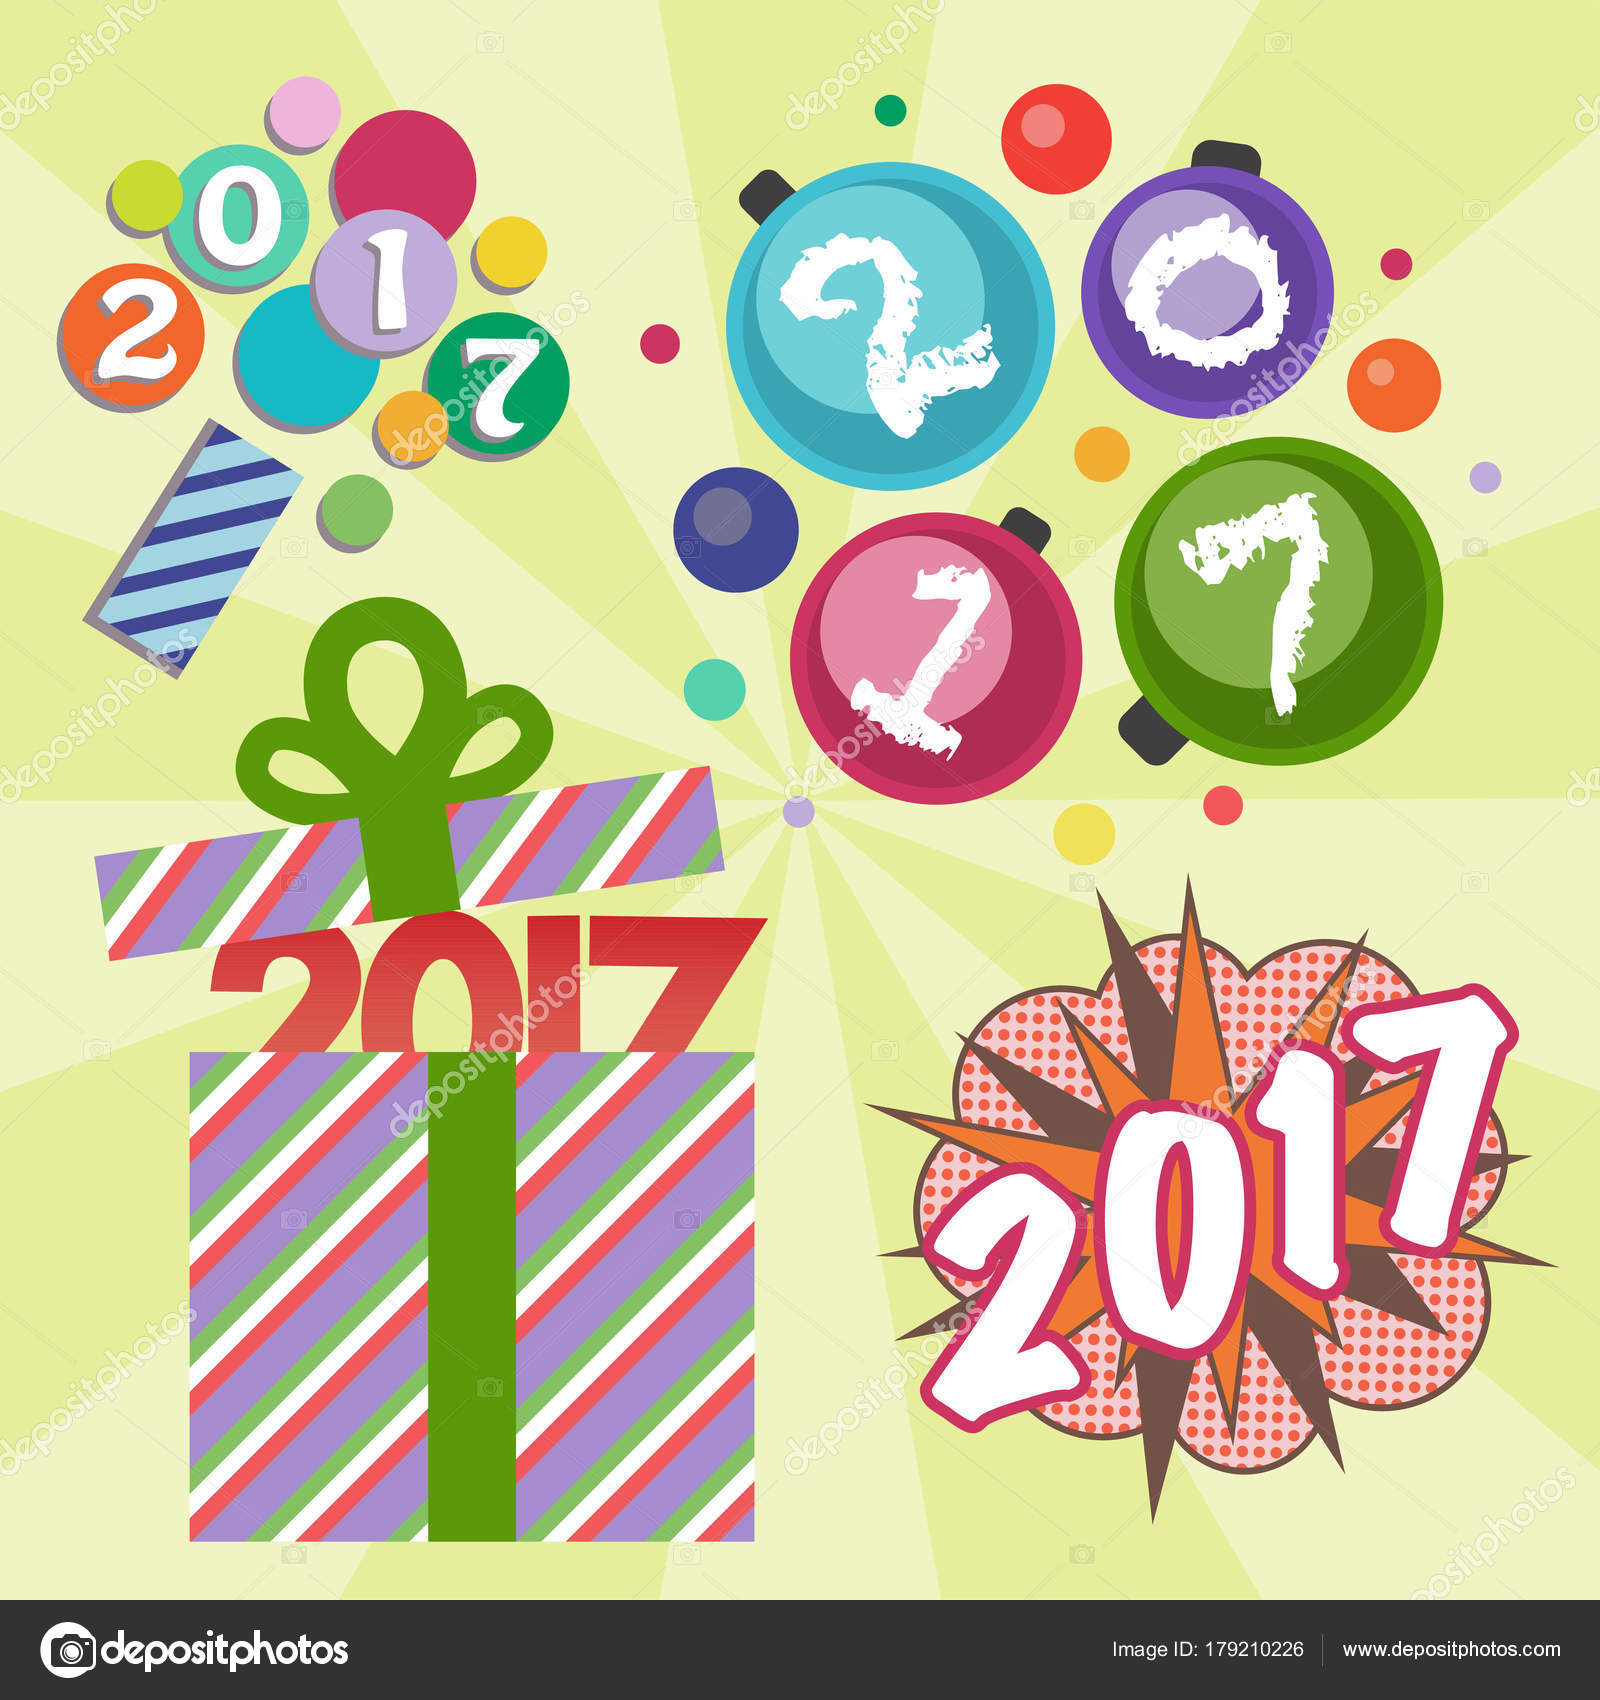 happy new year 2017 text design vector creative graphic celebration greeting party date illustration stock